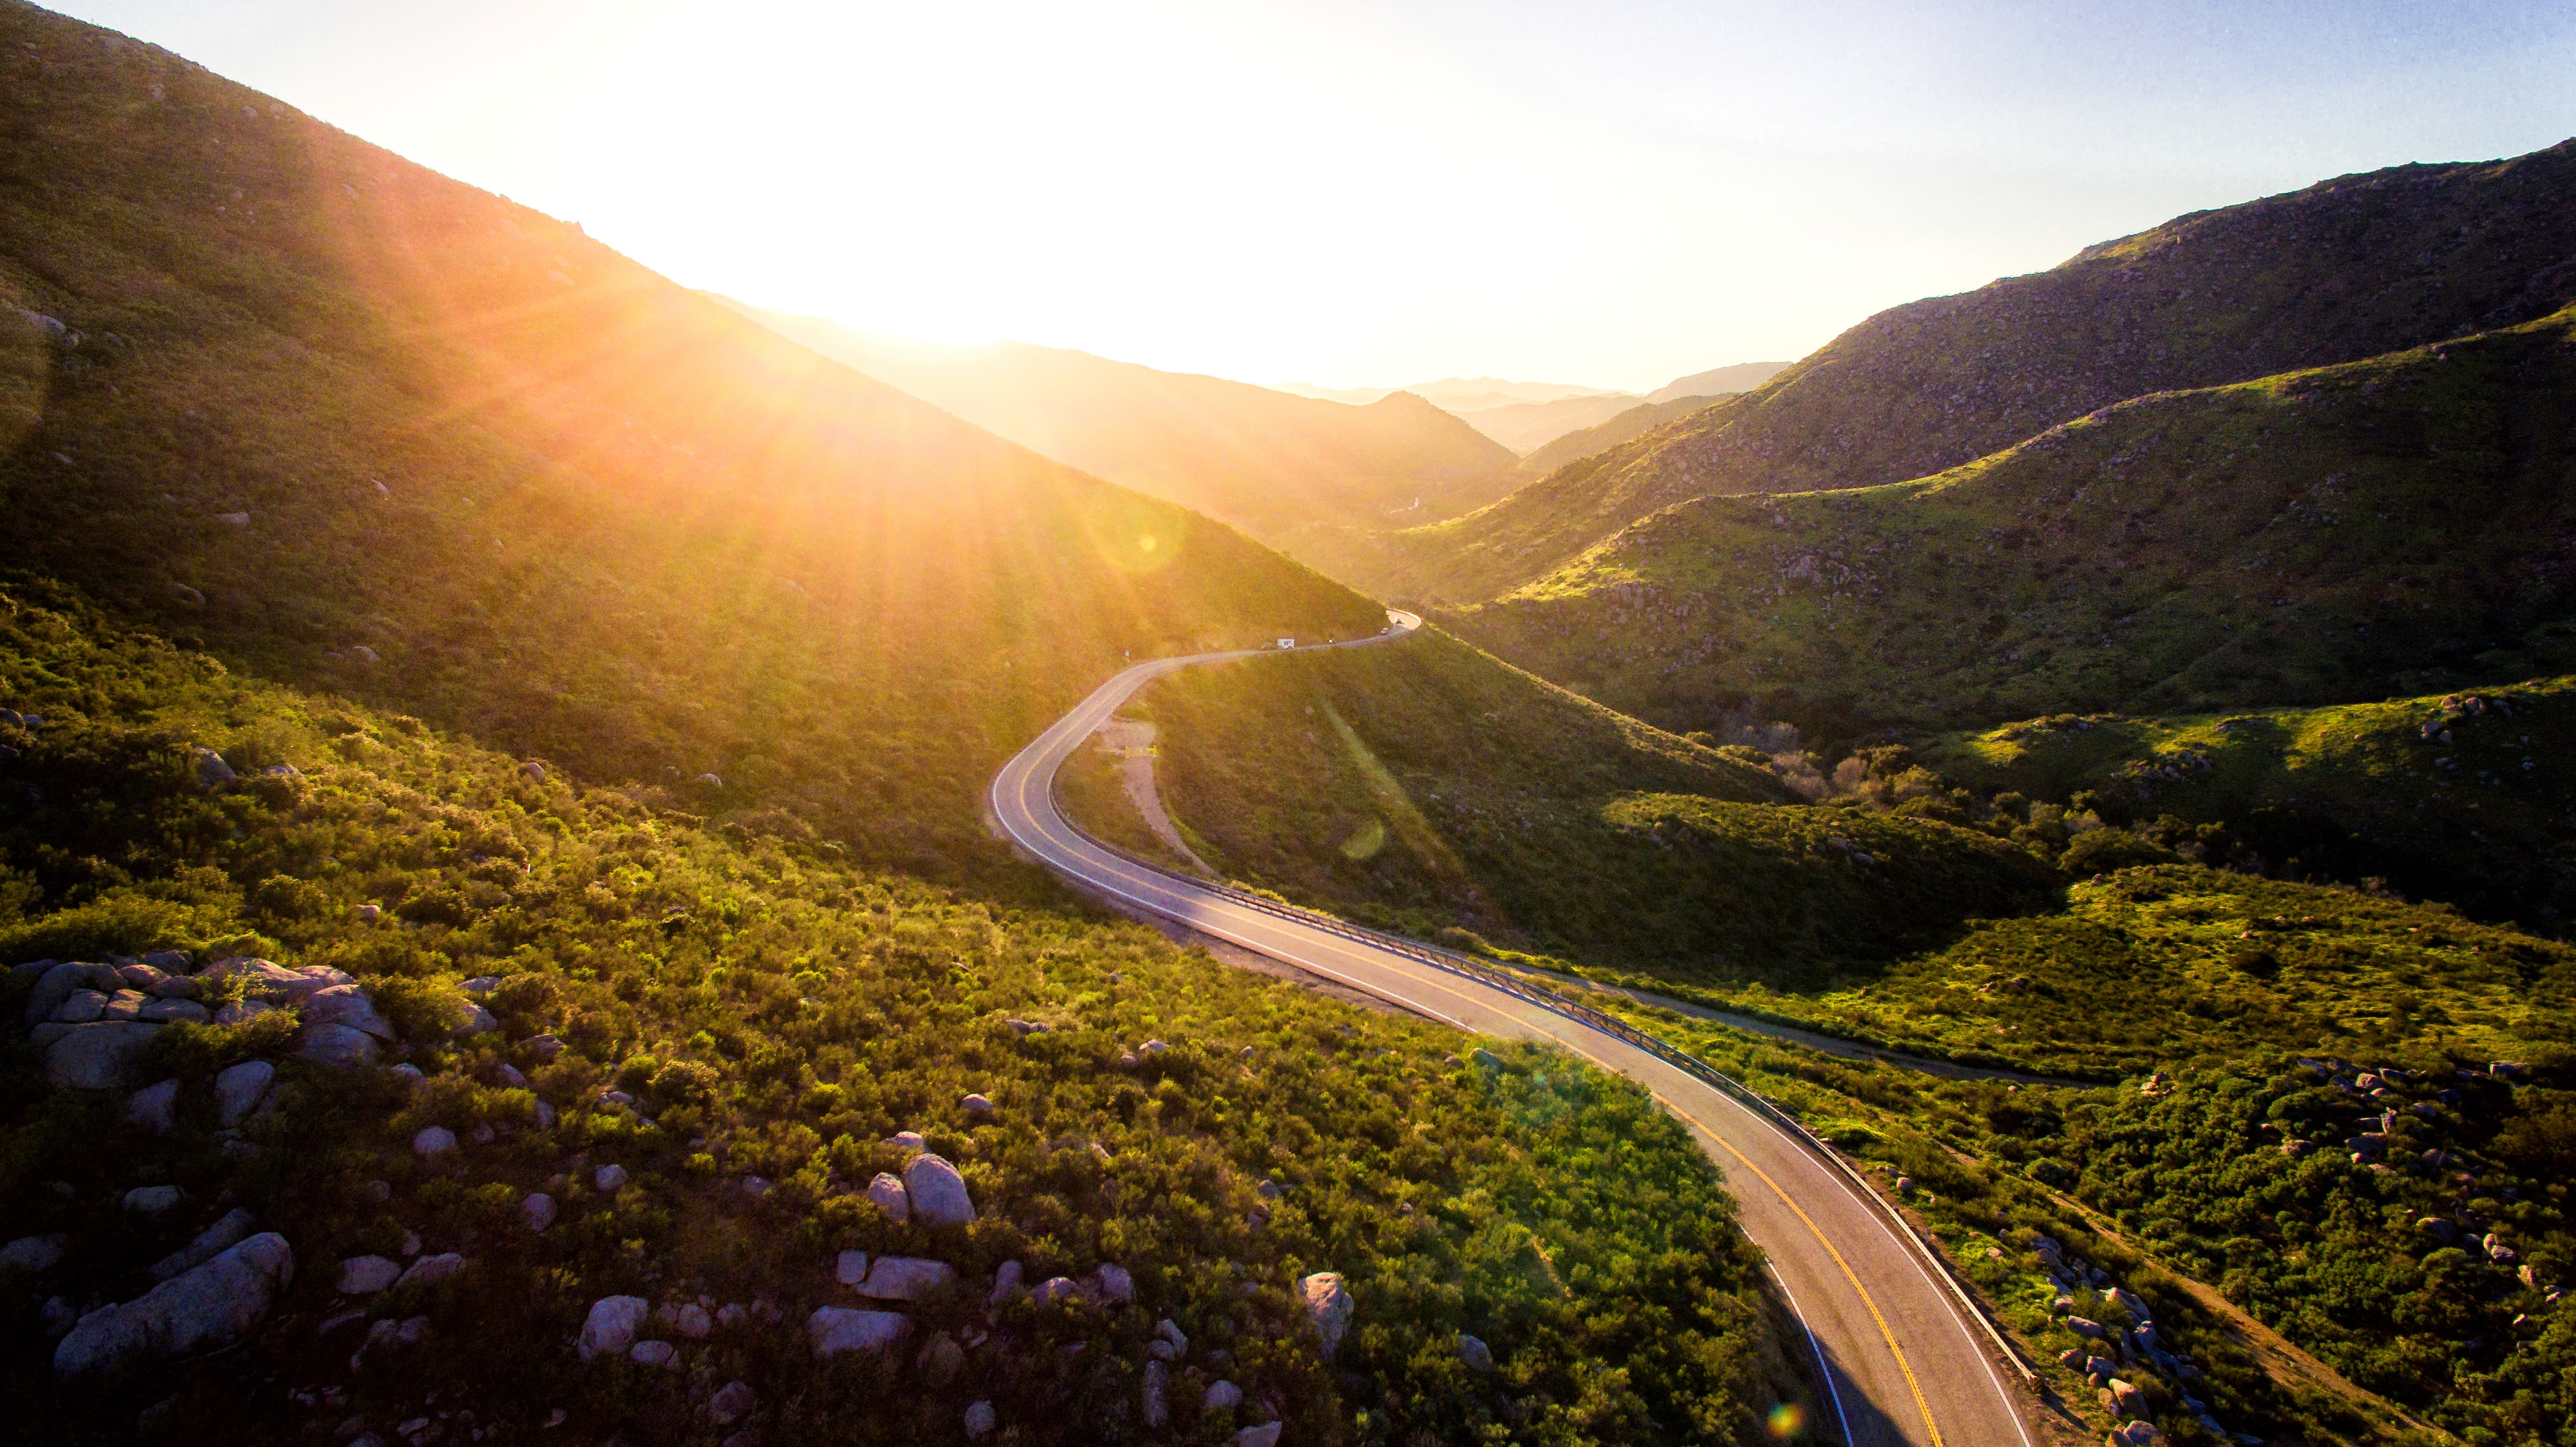 a road cutting through a mountain landscape with a sunrise shining through one of the mountain tops